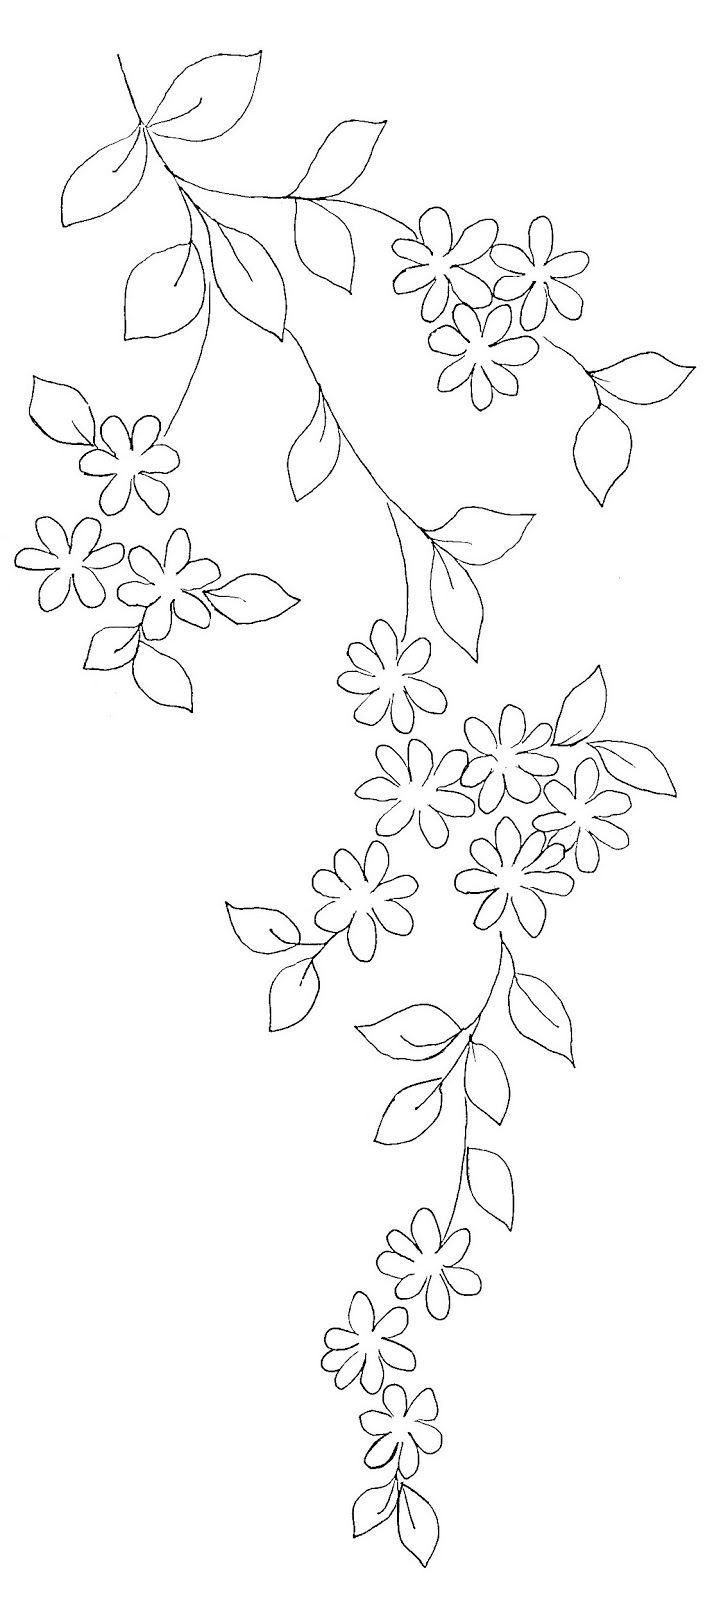 Embroidery pattern embroidery patterns flowers pinterest